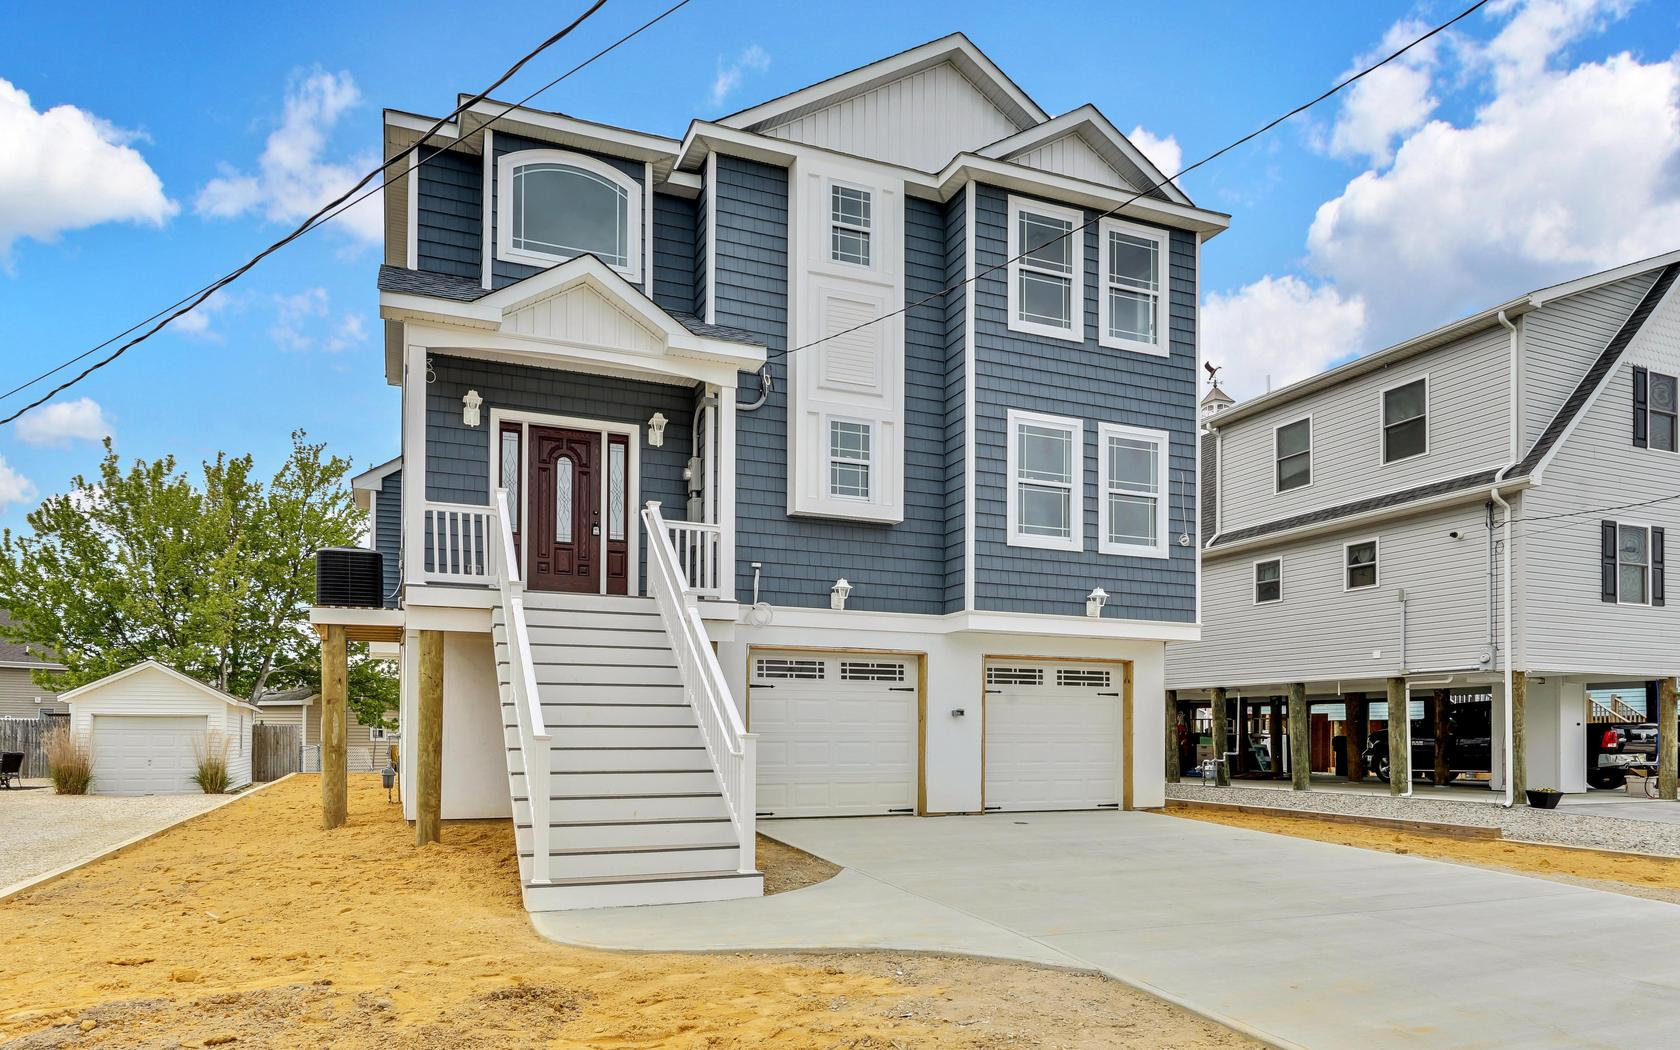 1519 N Bayview Ave, Seaside Park, NJ 08752